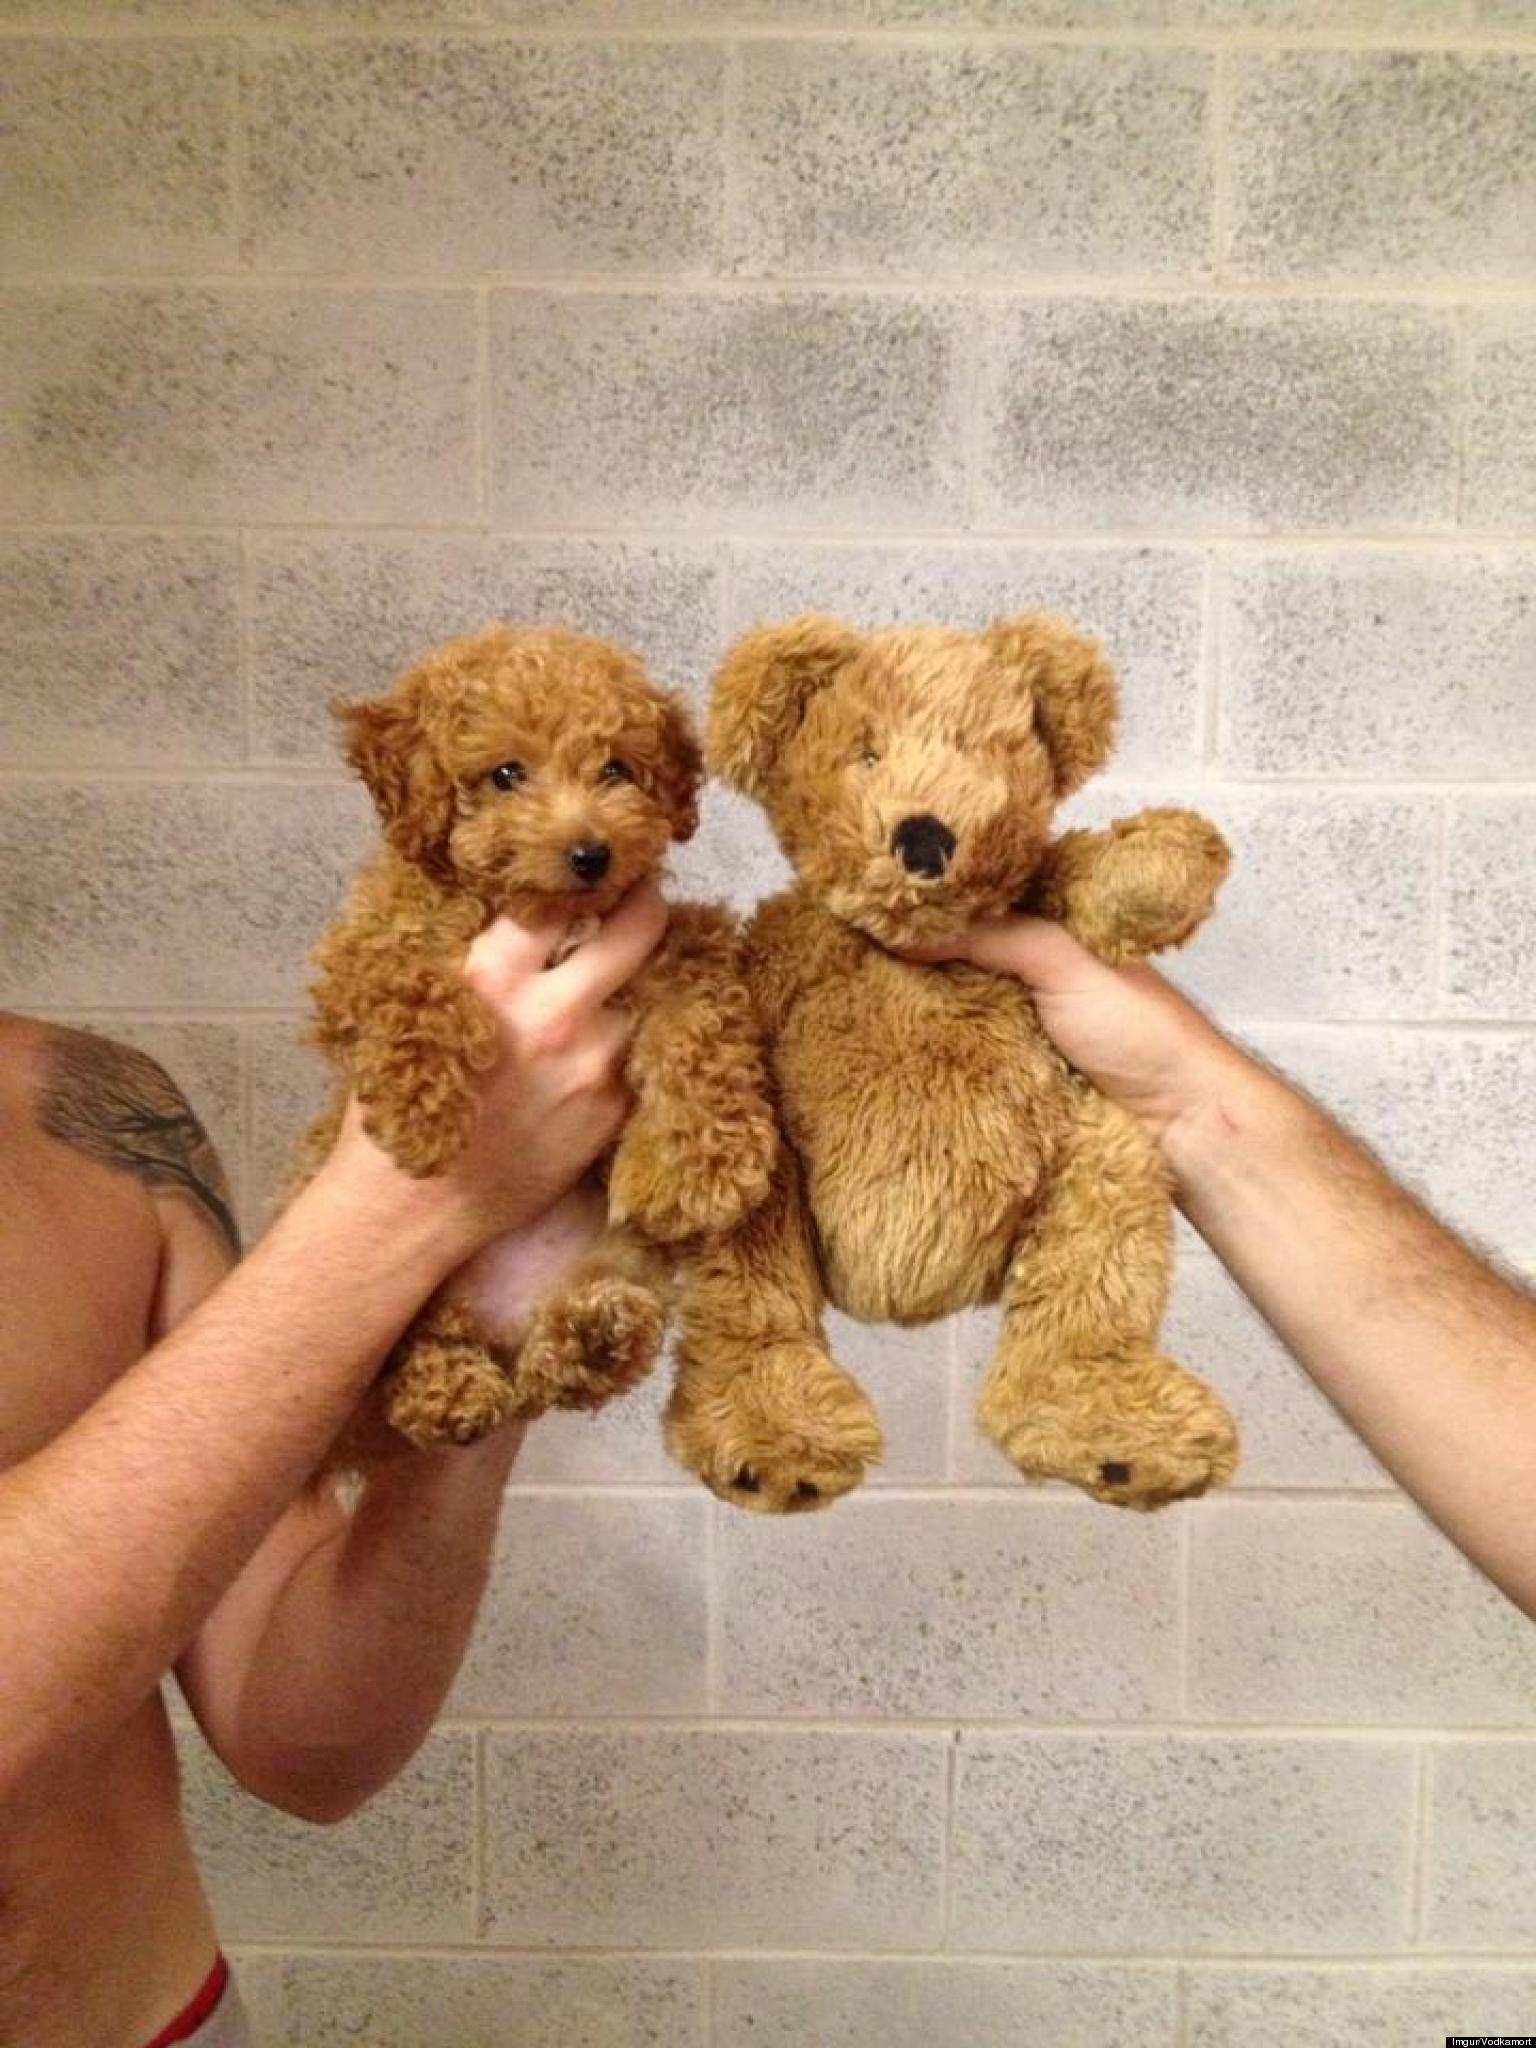 Toy Poodle Looks Just Like A Teddy Bear (PHOTO)